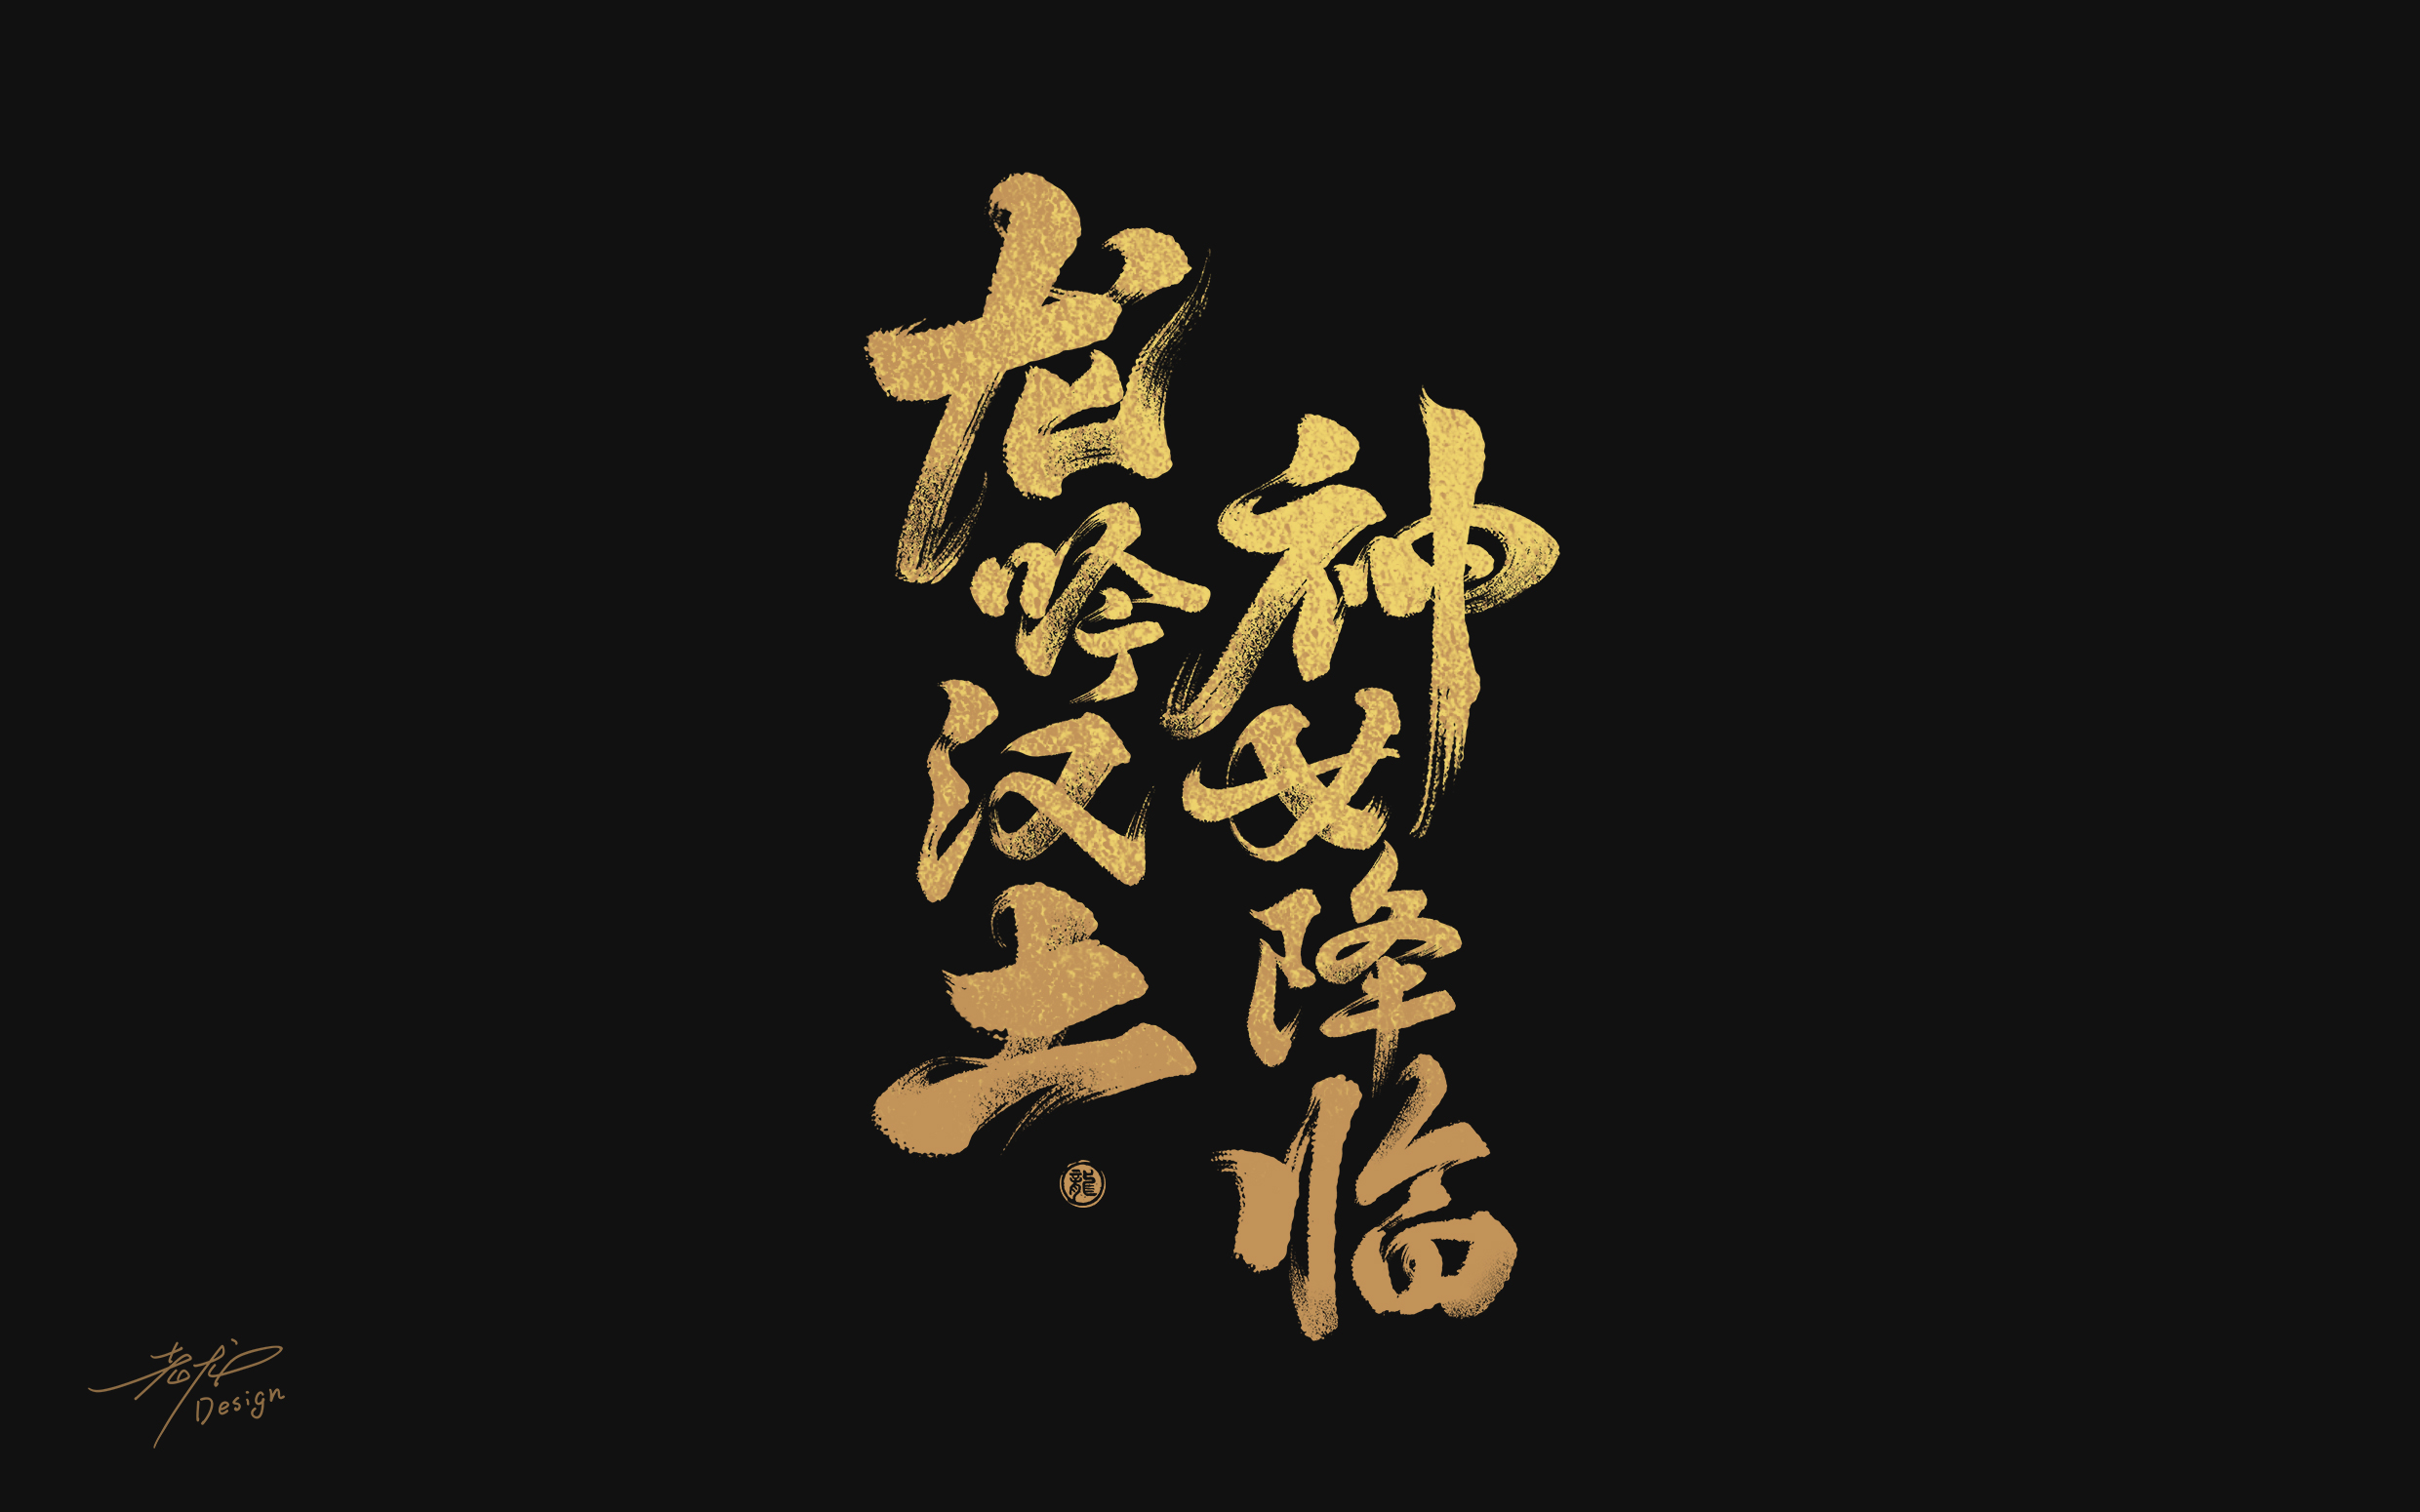 16P Collection of the latest Chinese font design schemes in 2021 #.621